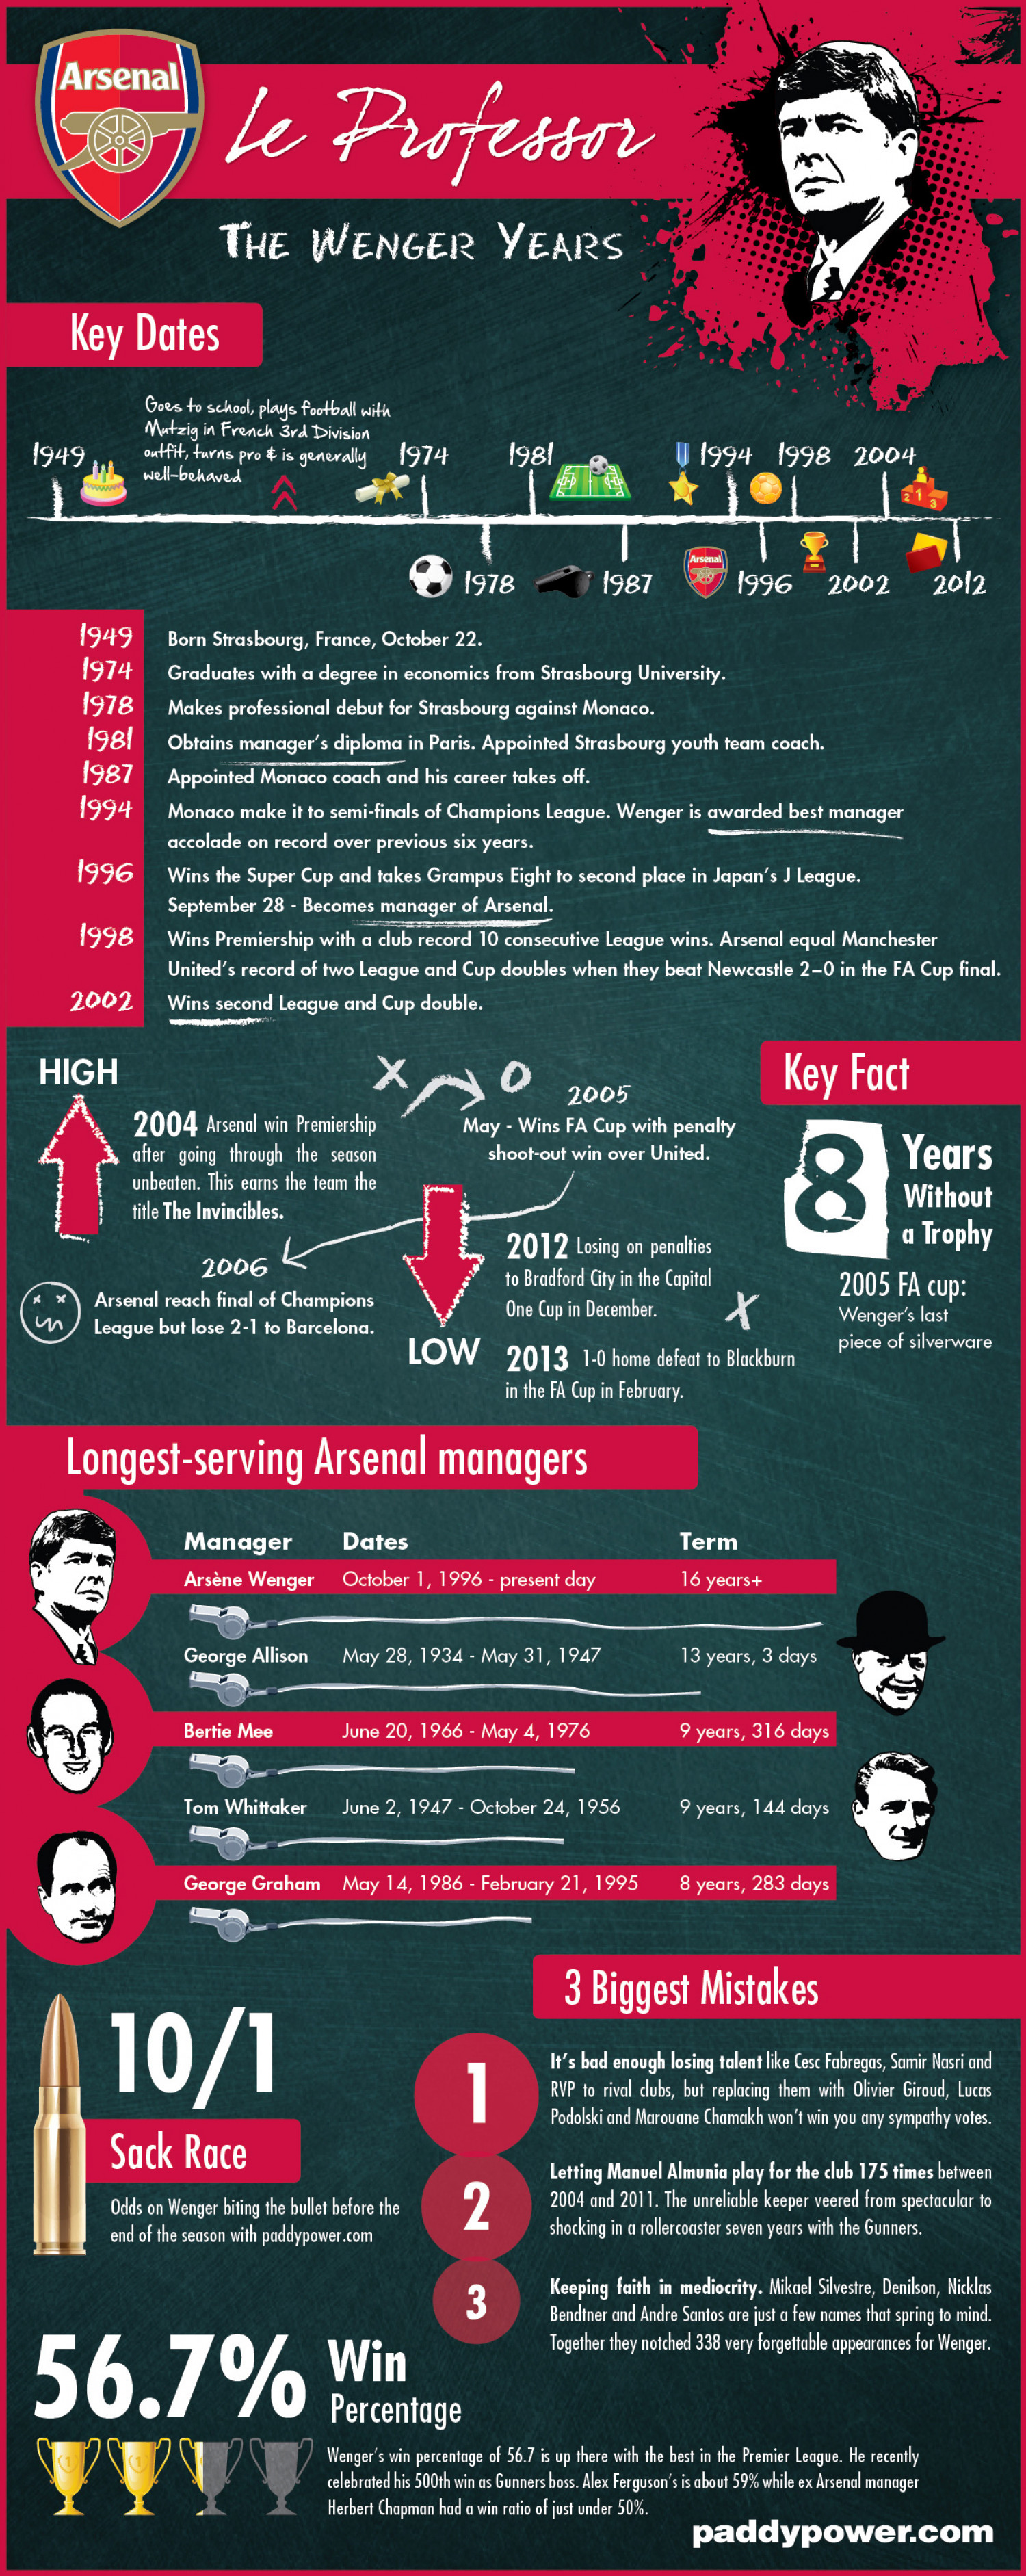 The Wenger Years Infographic